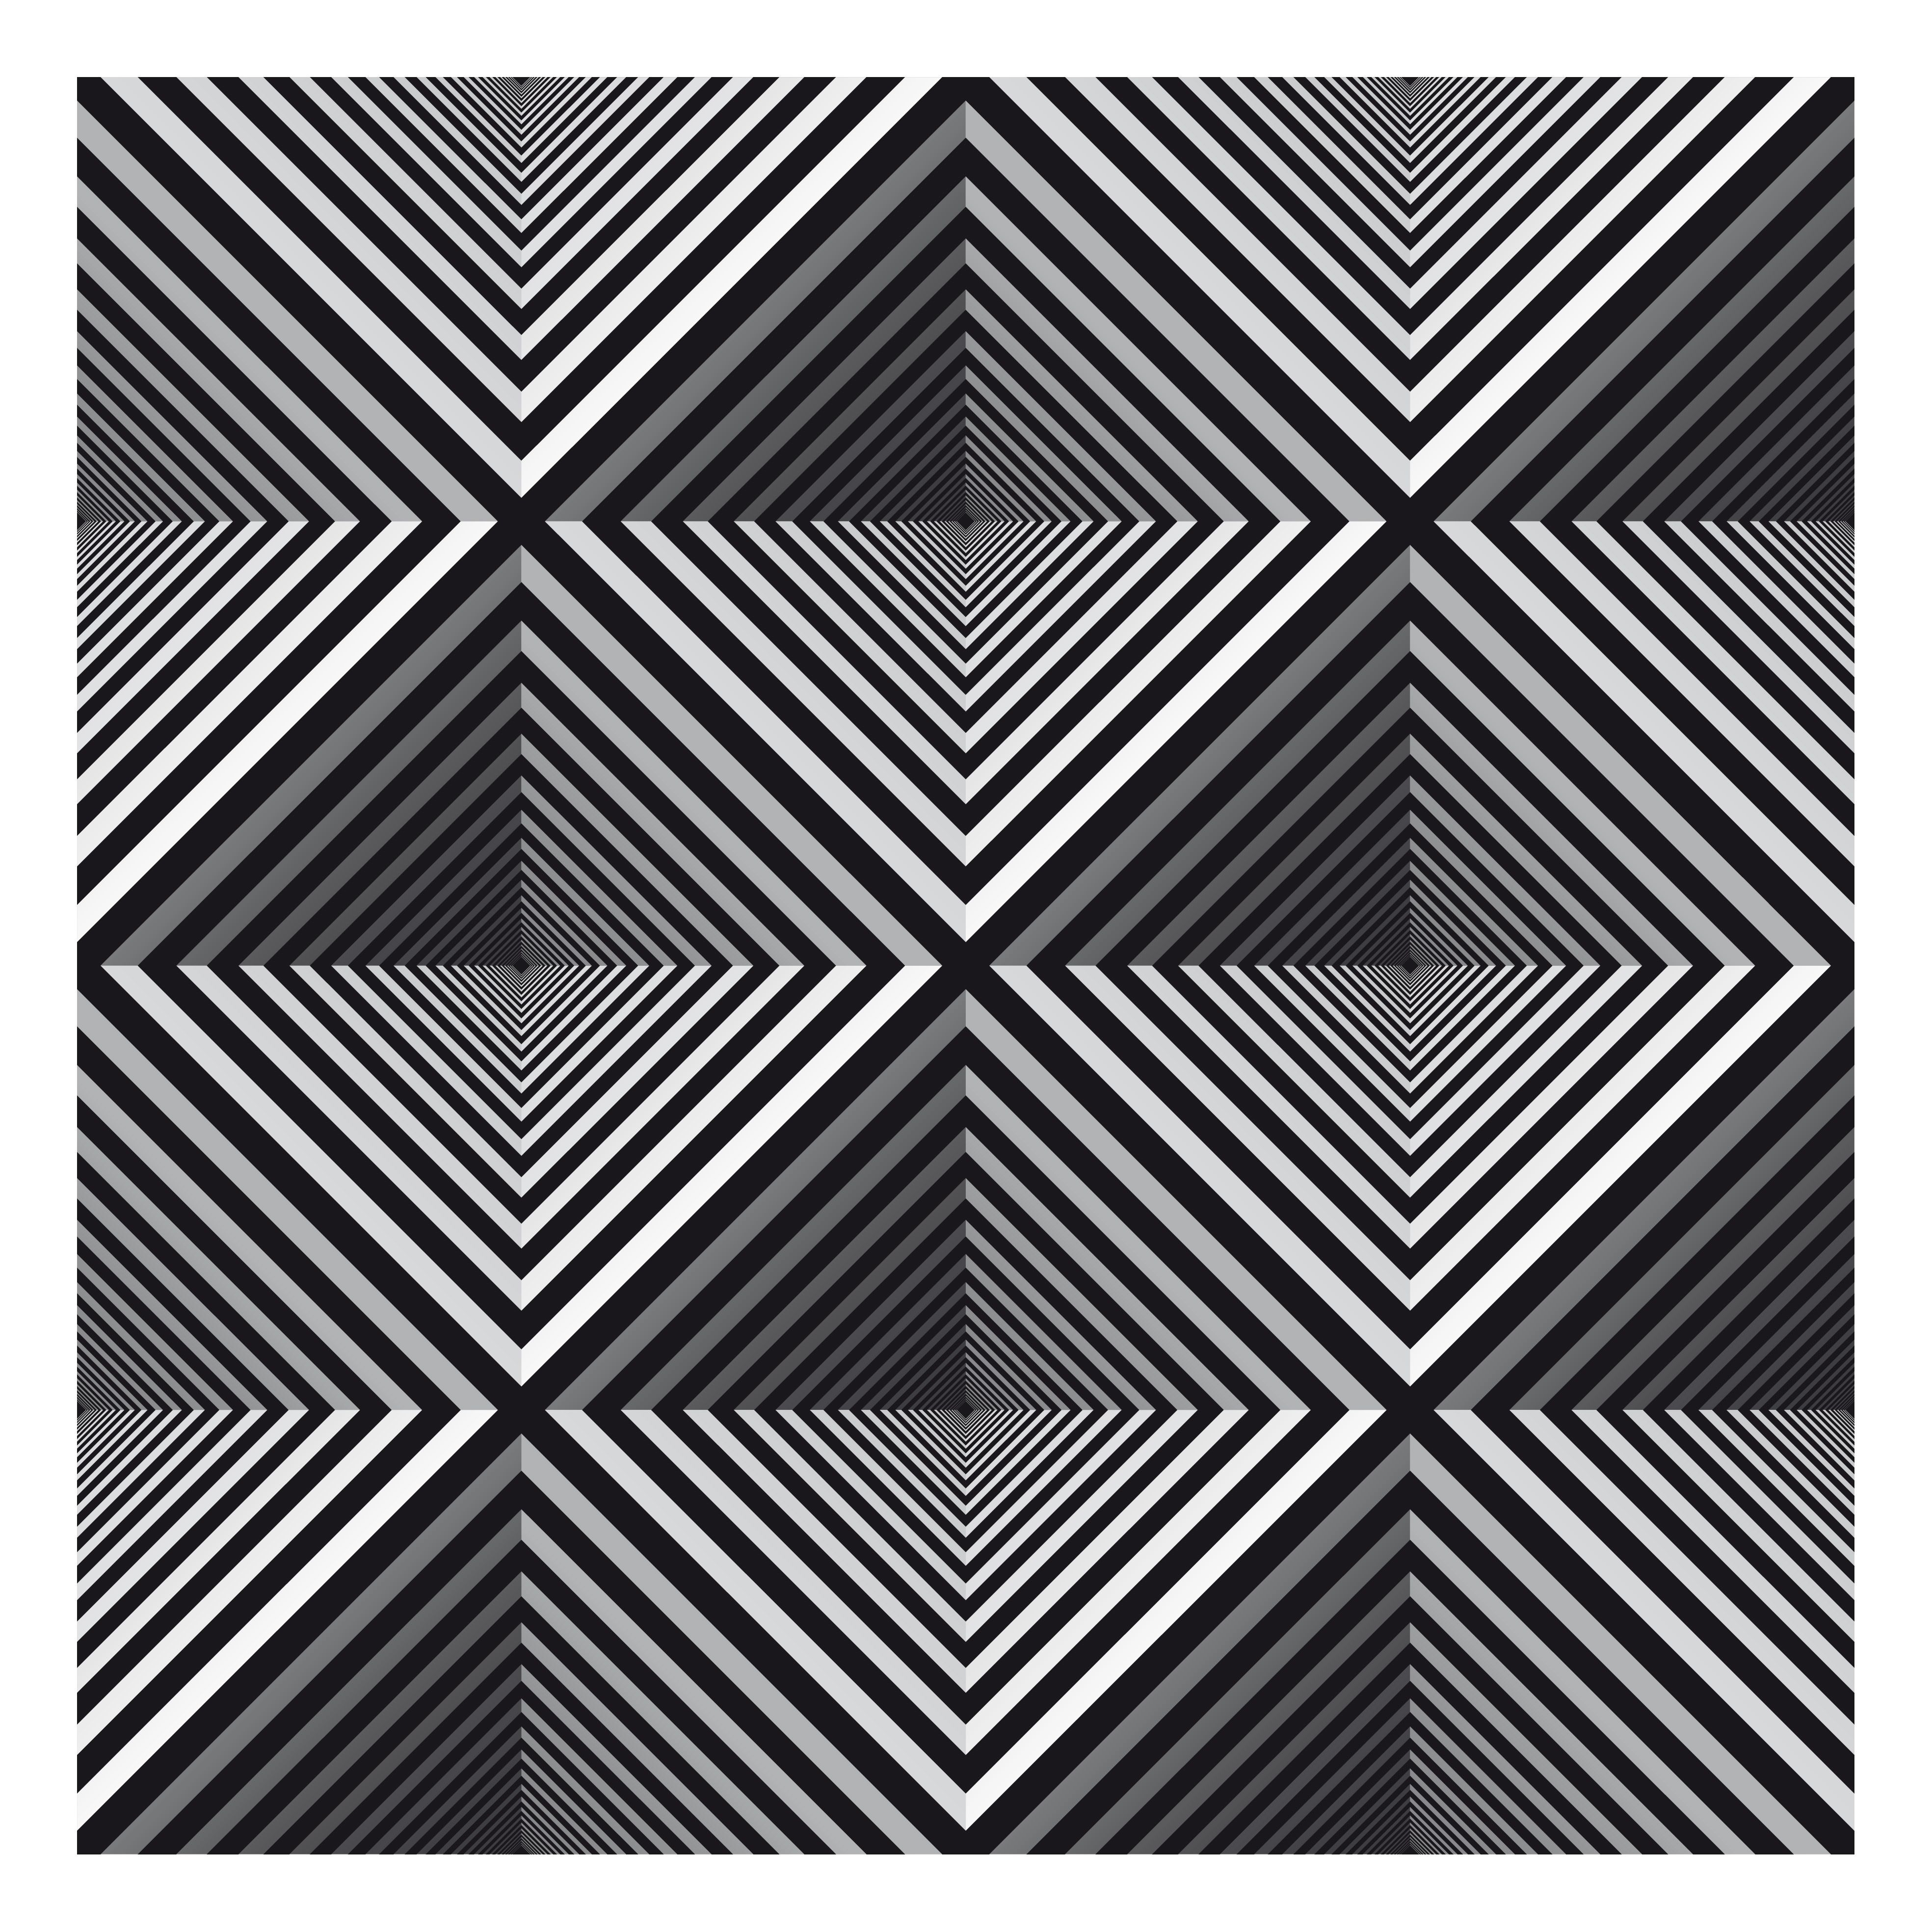 Op Art Image Of The Day – July